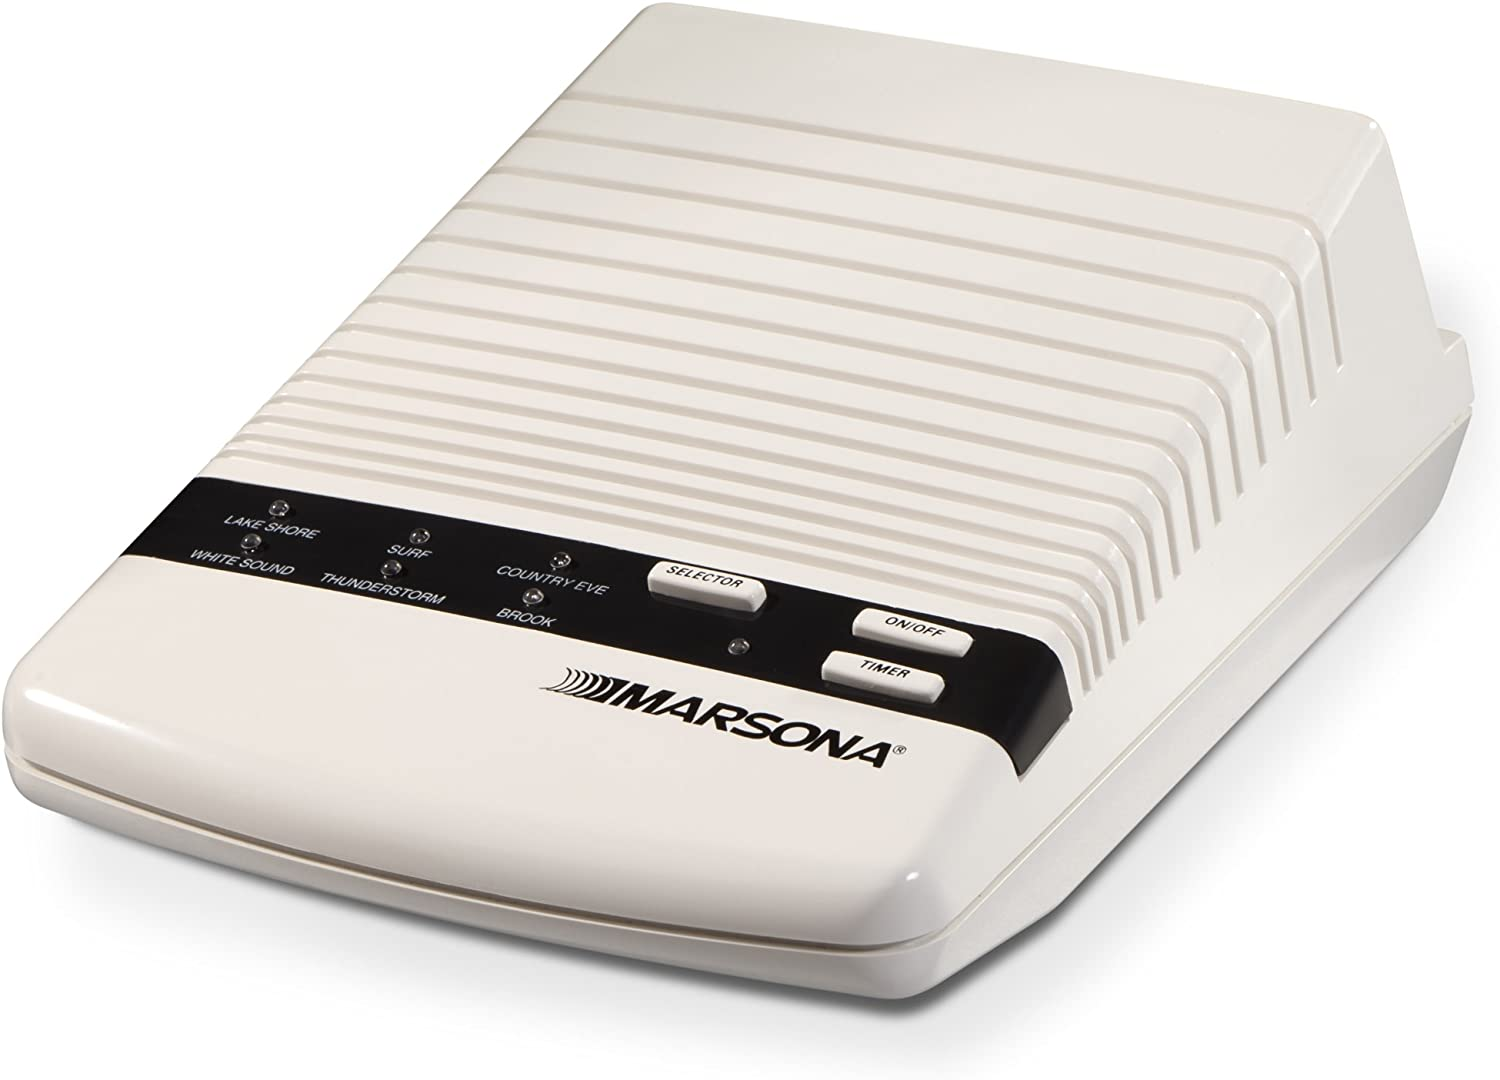 Popularity Marpac Free shipping / New 600a Marsona Ds-600a